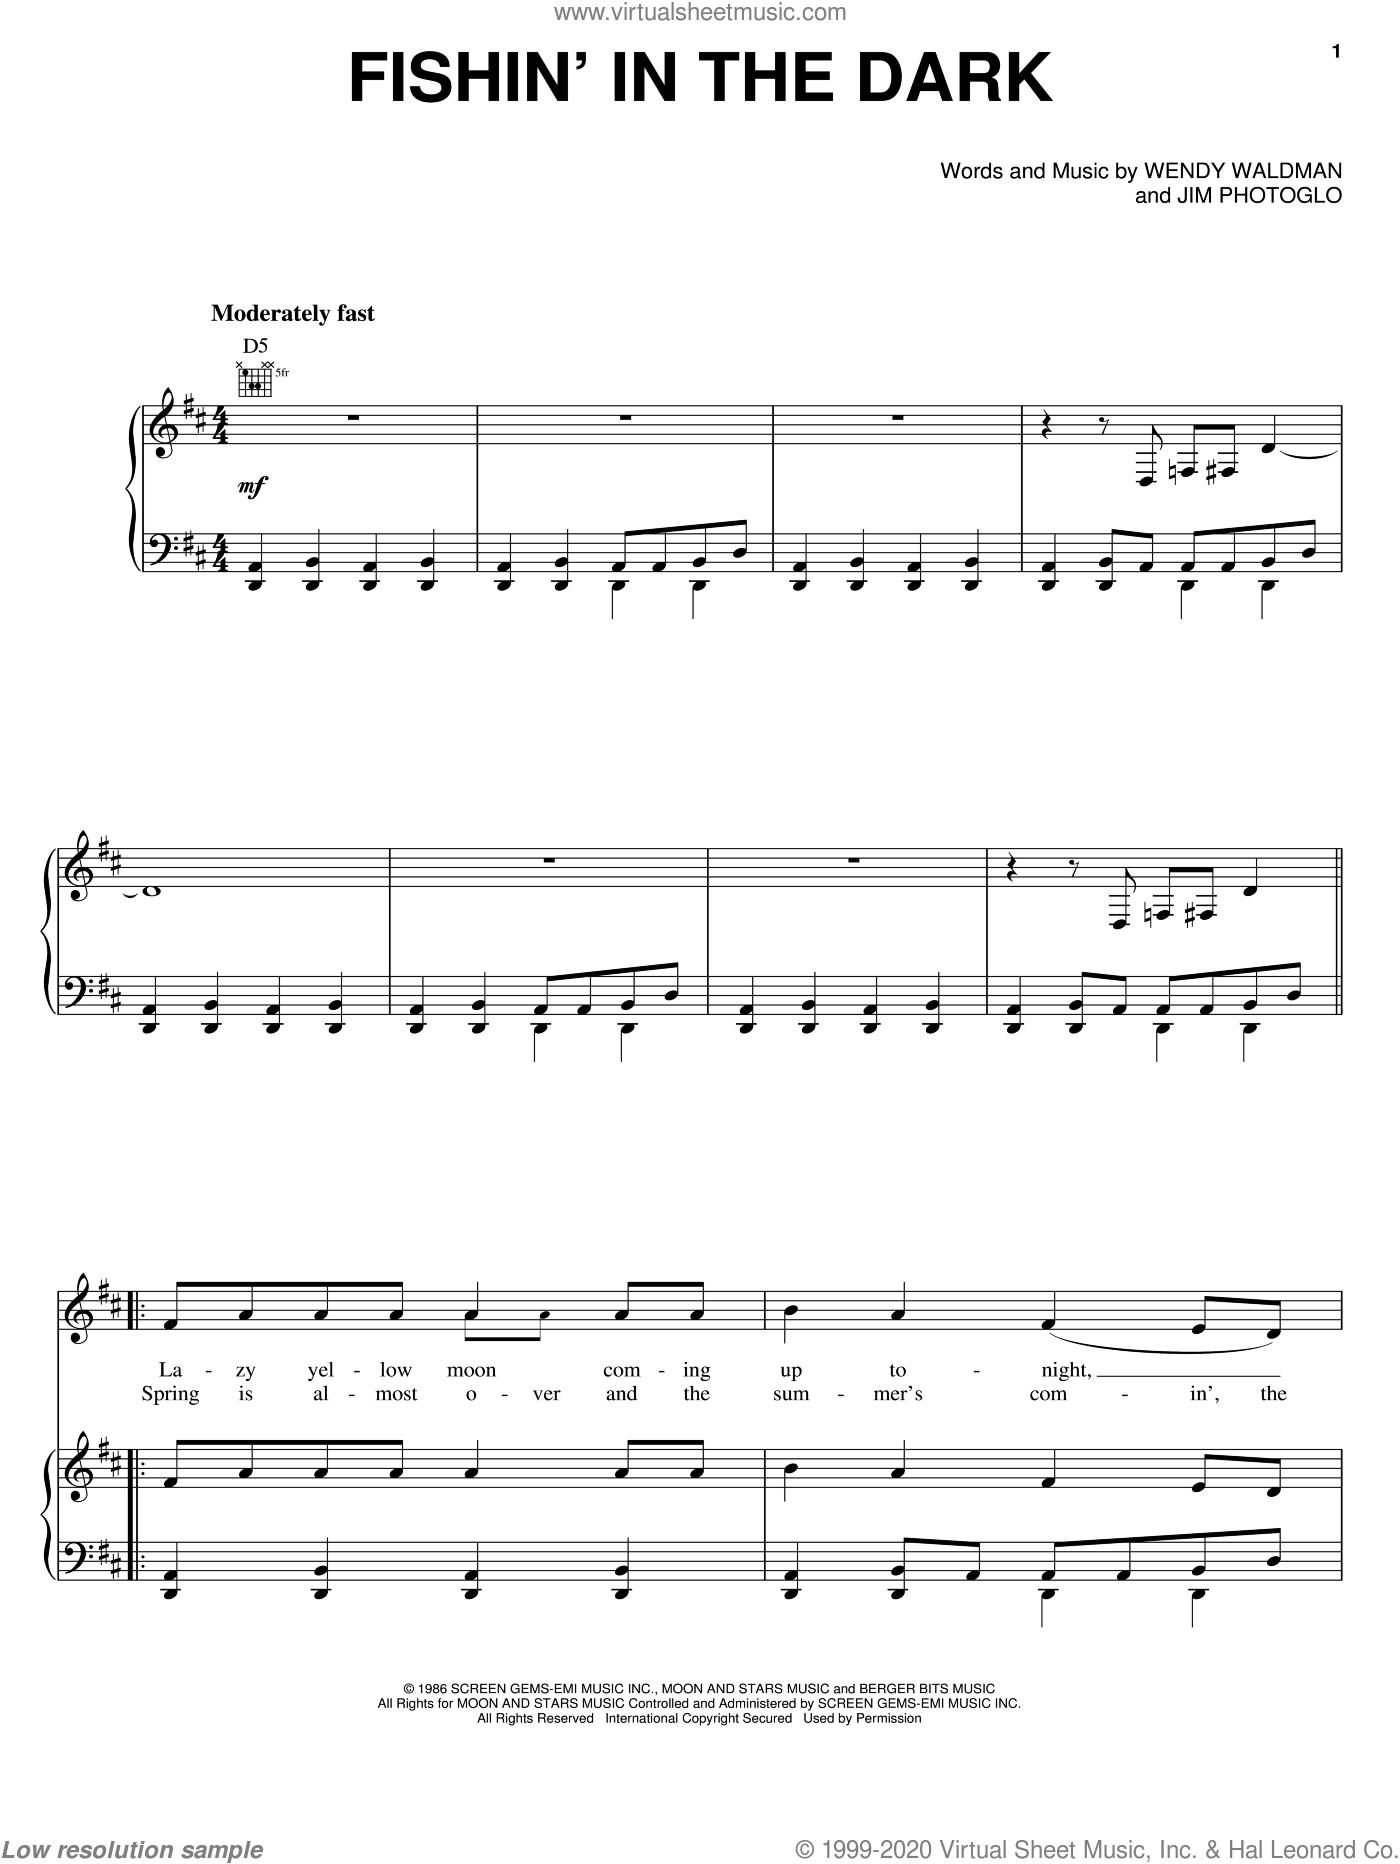 Fishin' In The Dark sheet music for voice, piano or guitar by Nitty Gritty Dirt Band, Jim Photoglo and Wendy Waldman, intermediate skill level